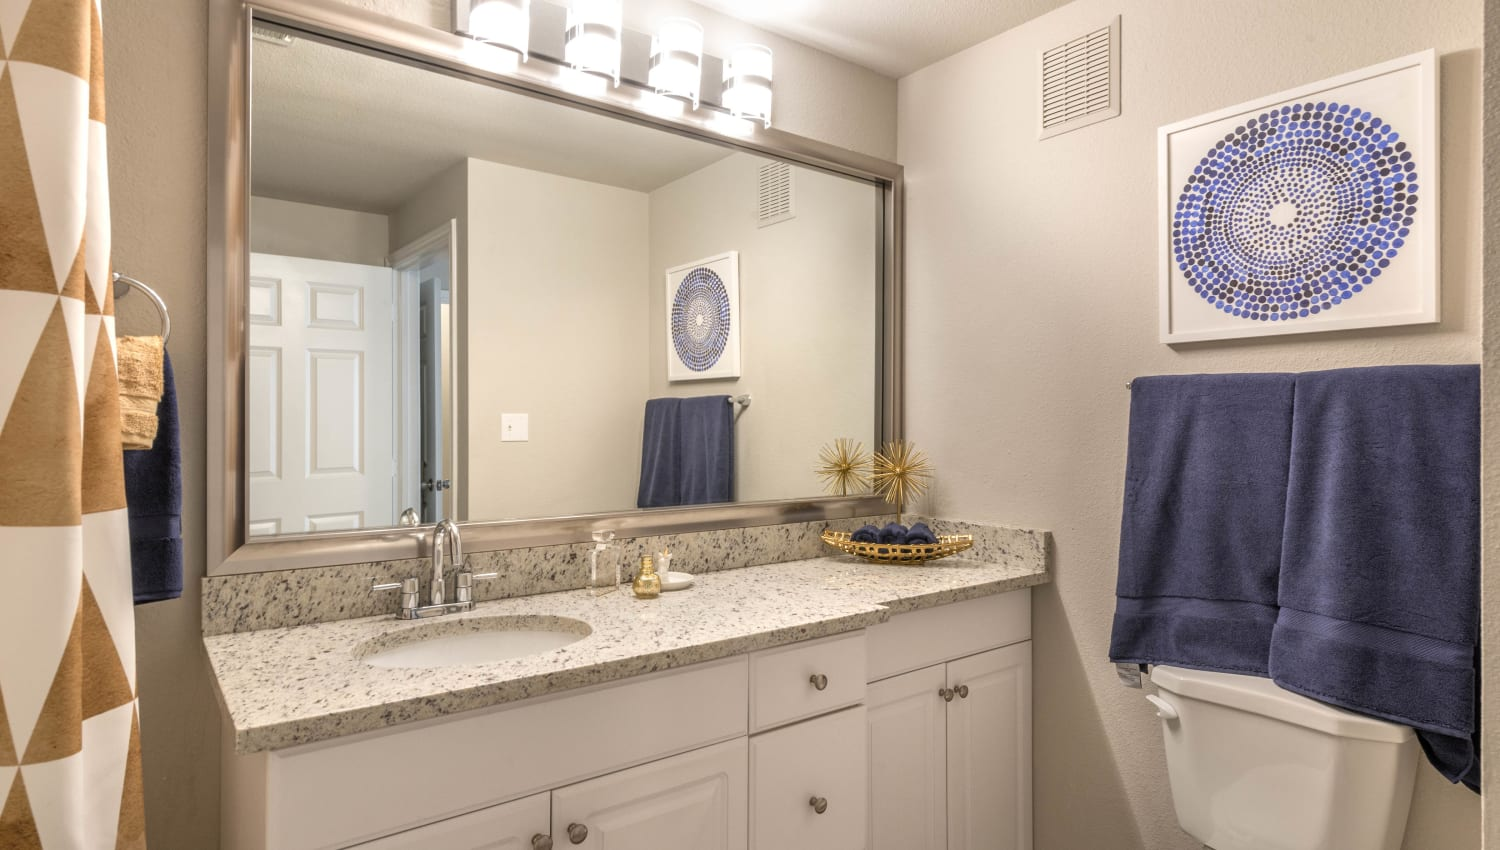 Granite countertop in a model apartment's bathroom at Olympus Town Center in Keller, Texas